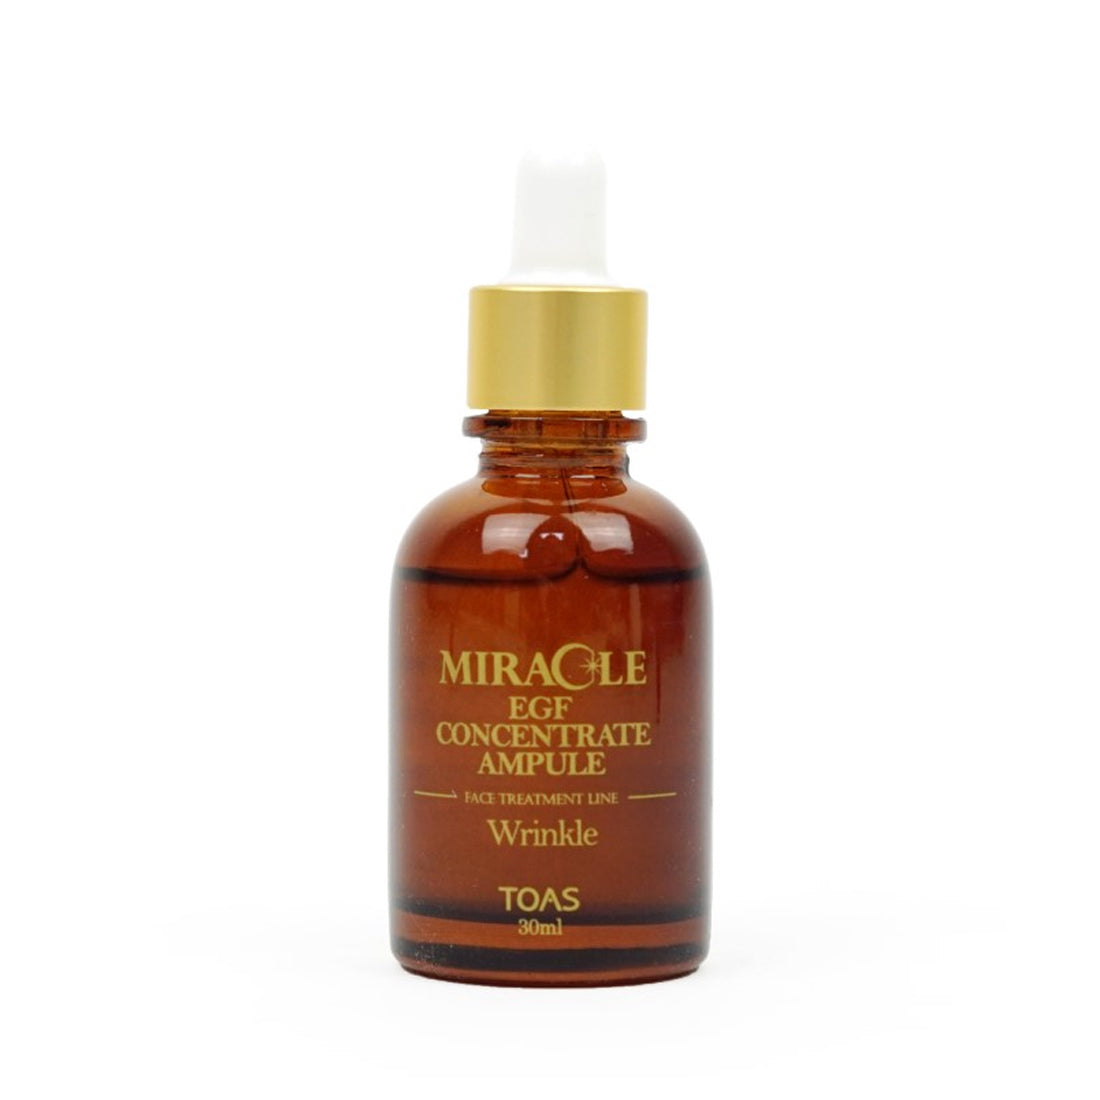 TOAS MIRACLE EGF CONCENTRATE AMPULE EGF CONCENTRATE AMPULE 30ML